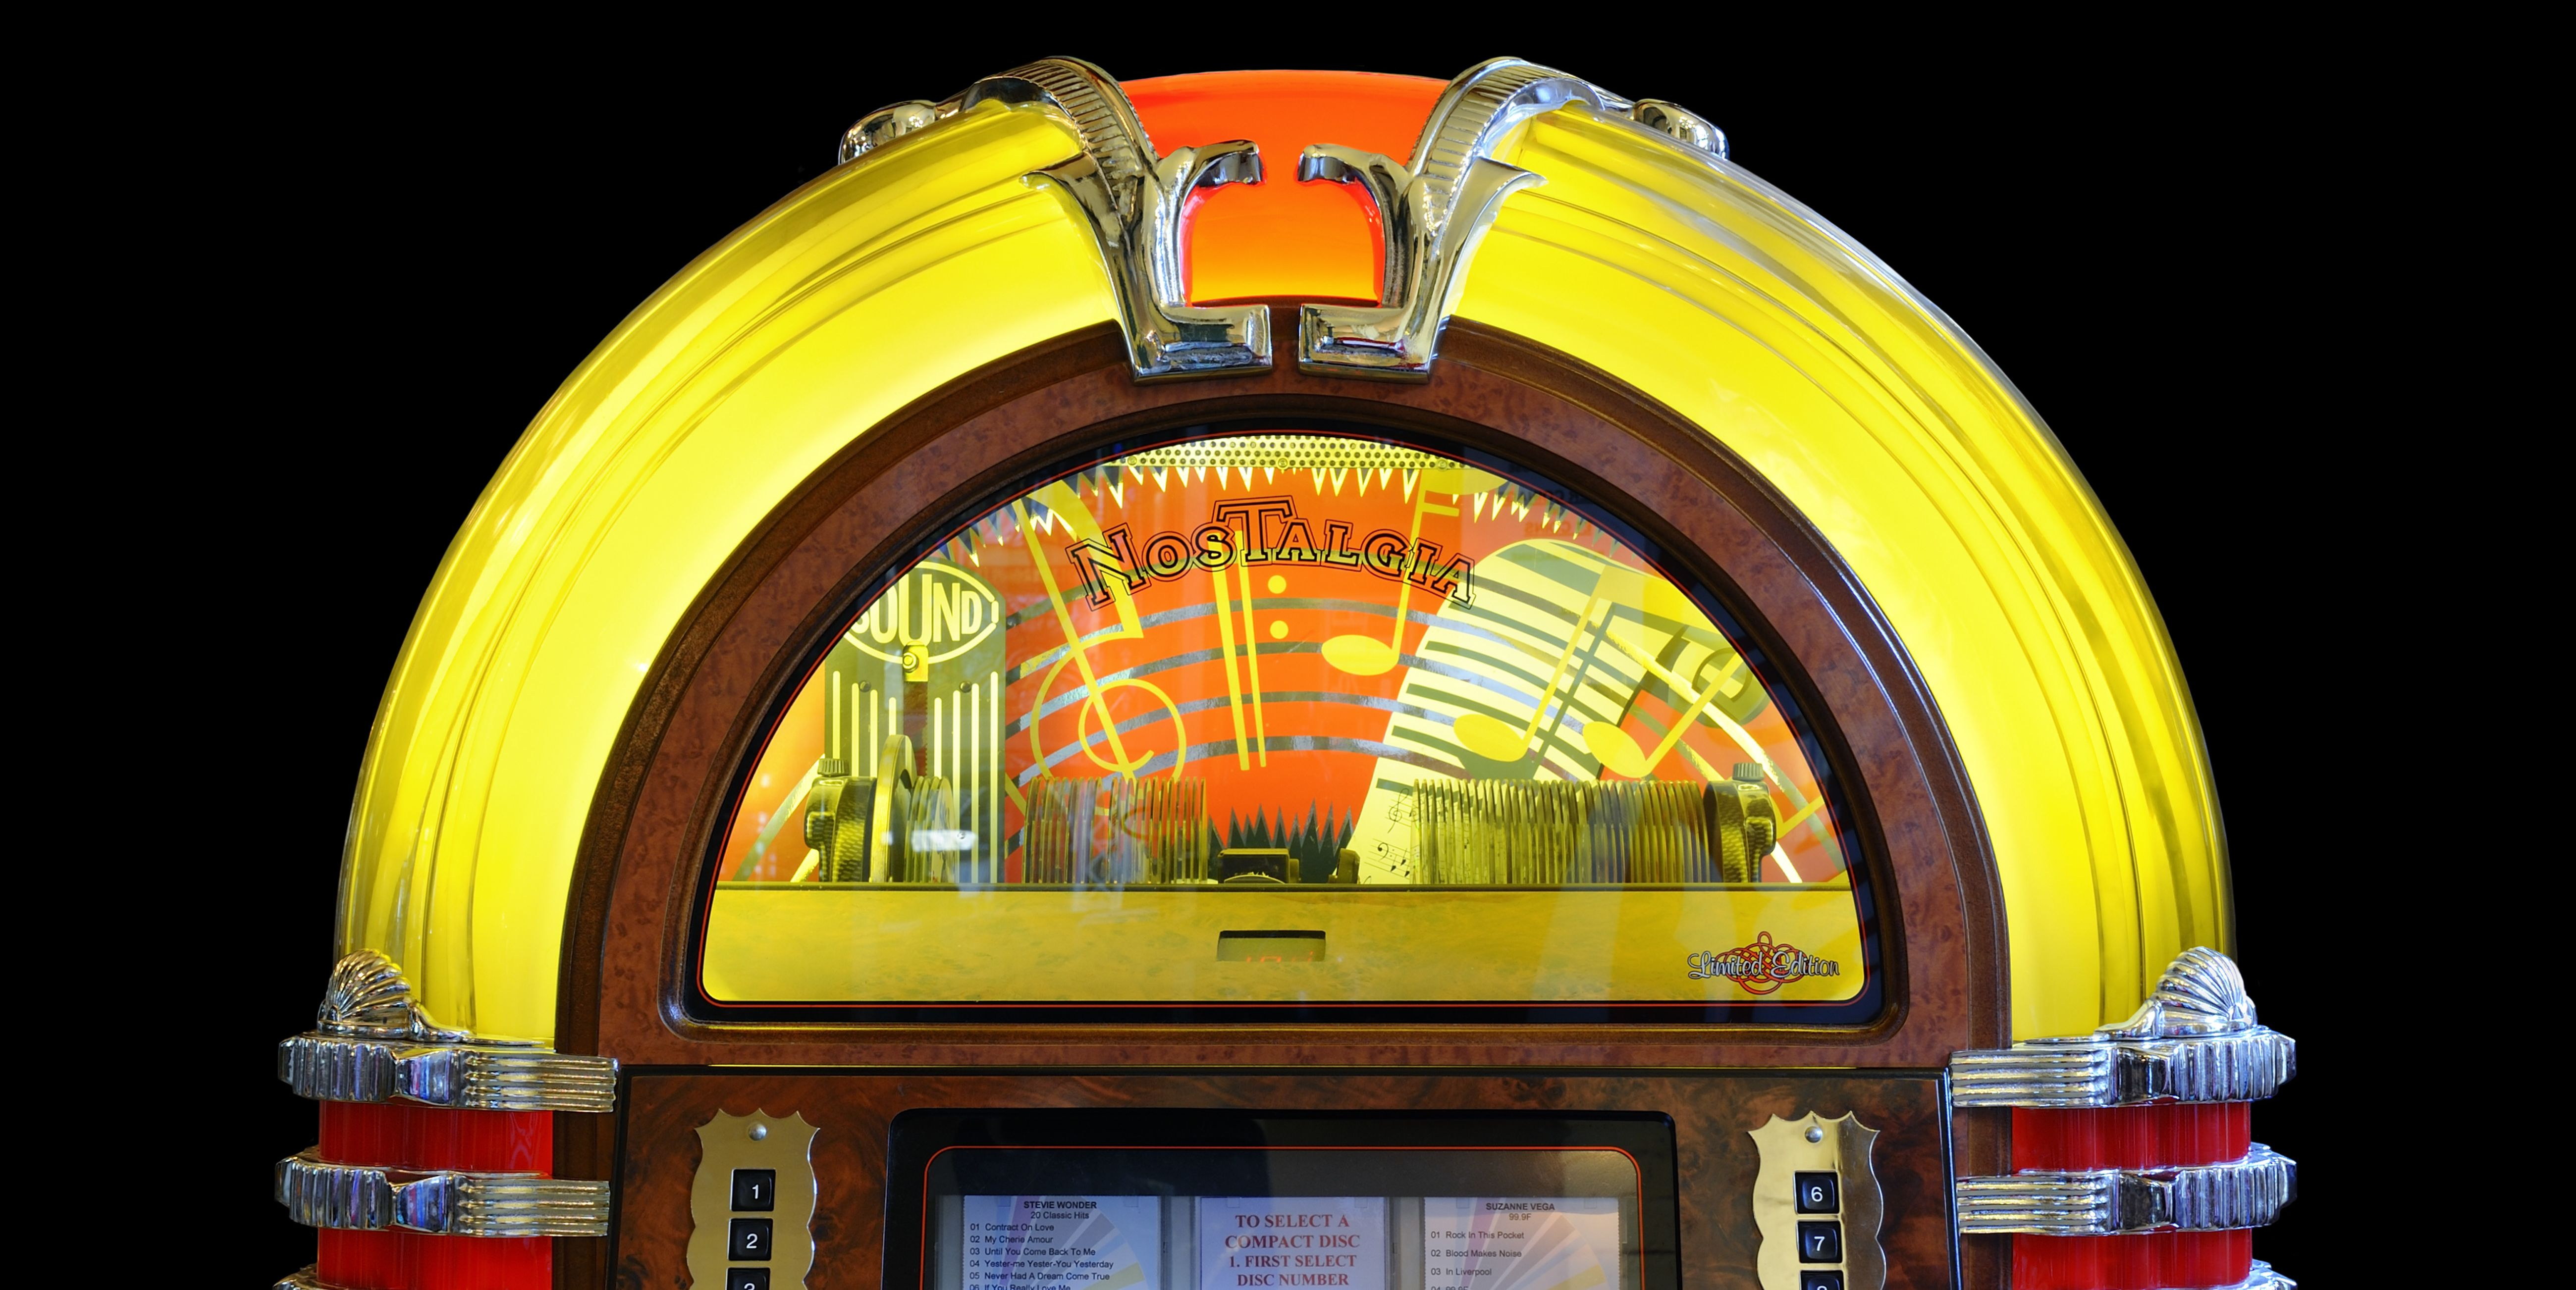 Europe, England, West Yorkshire, Jukebox